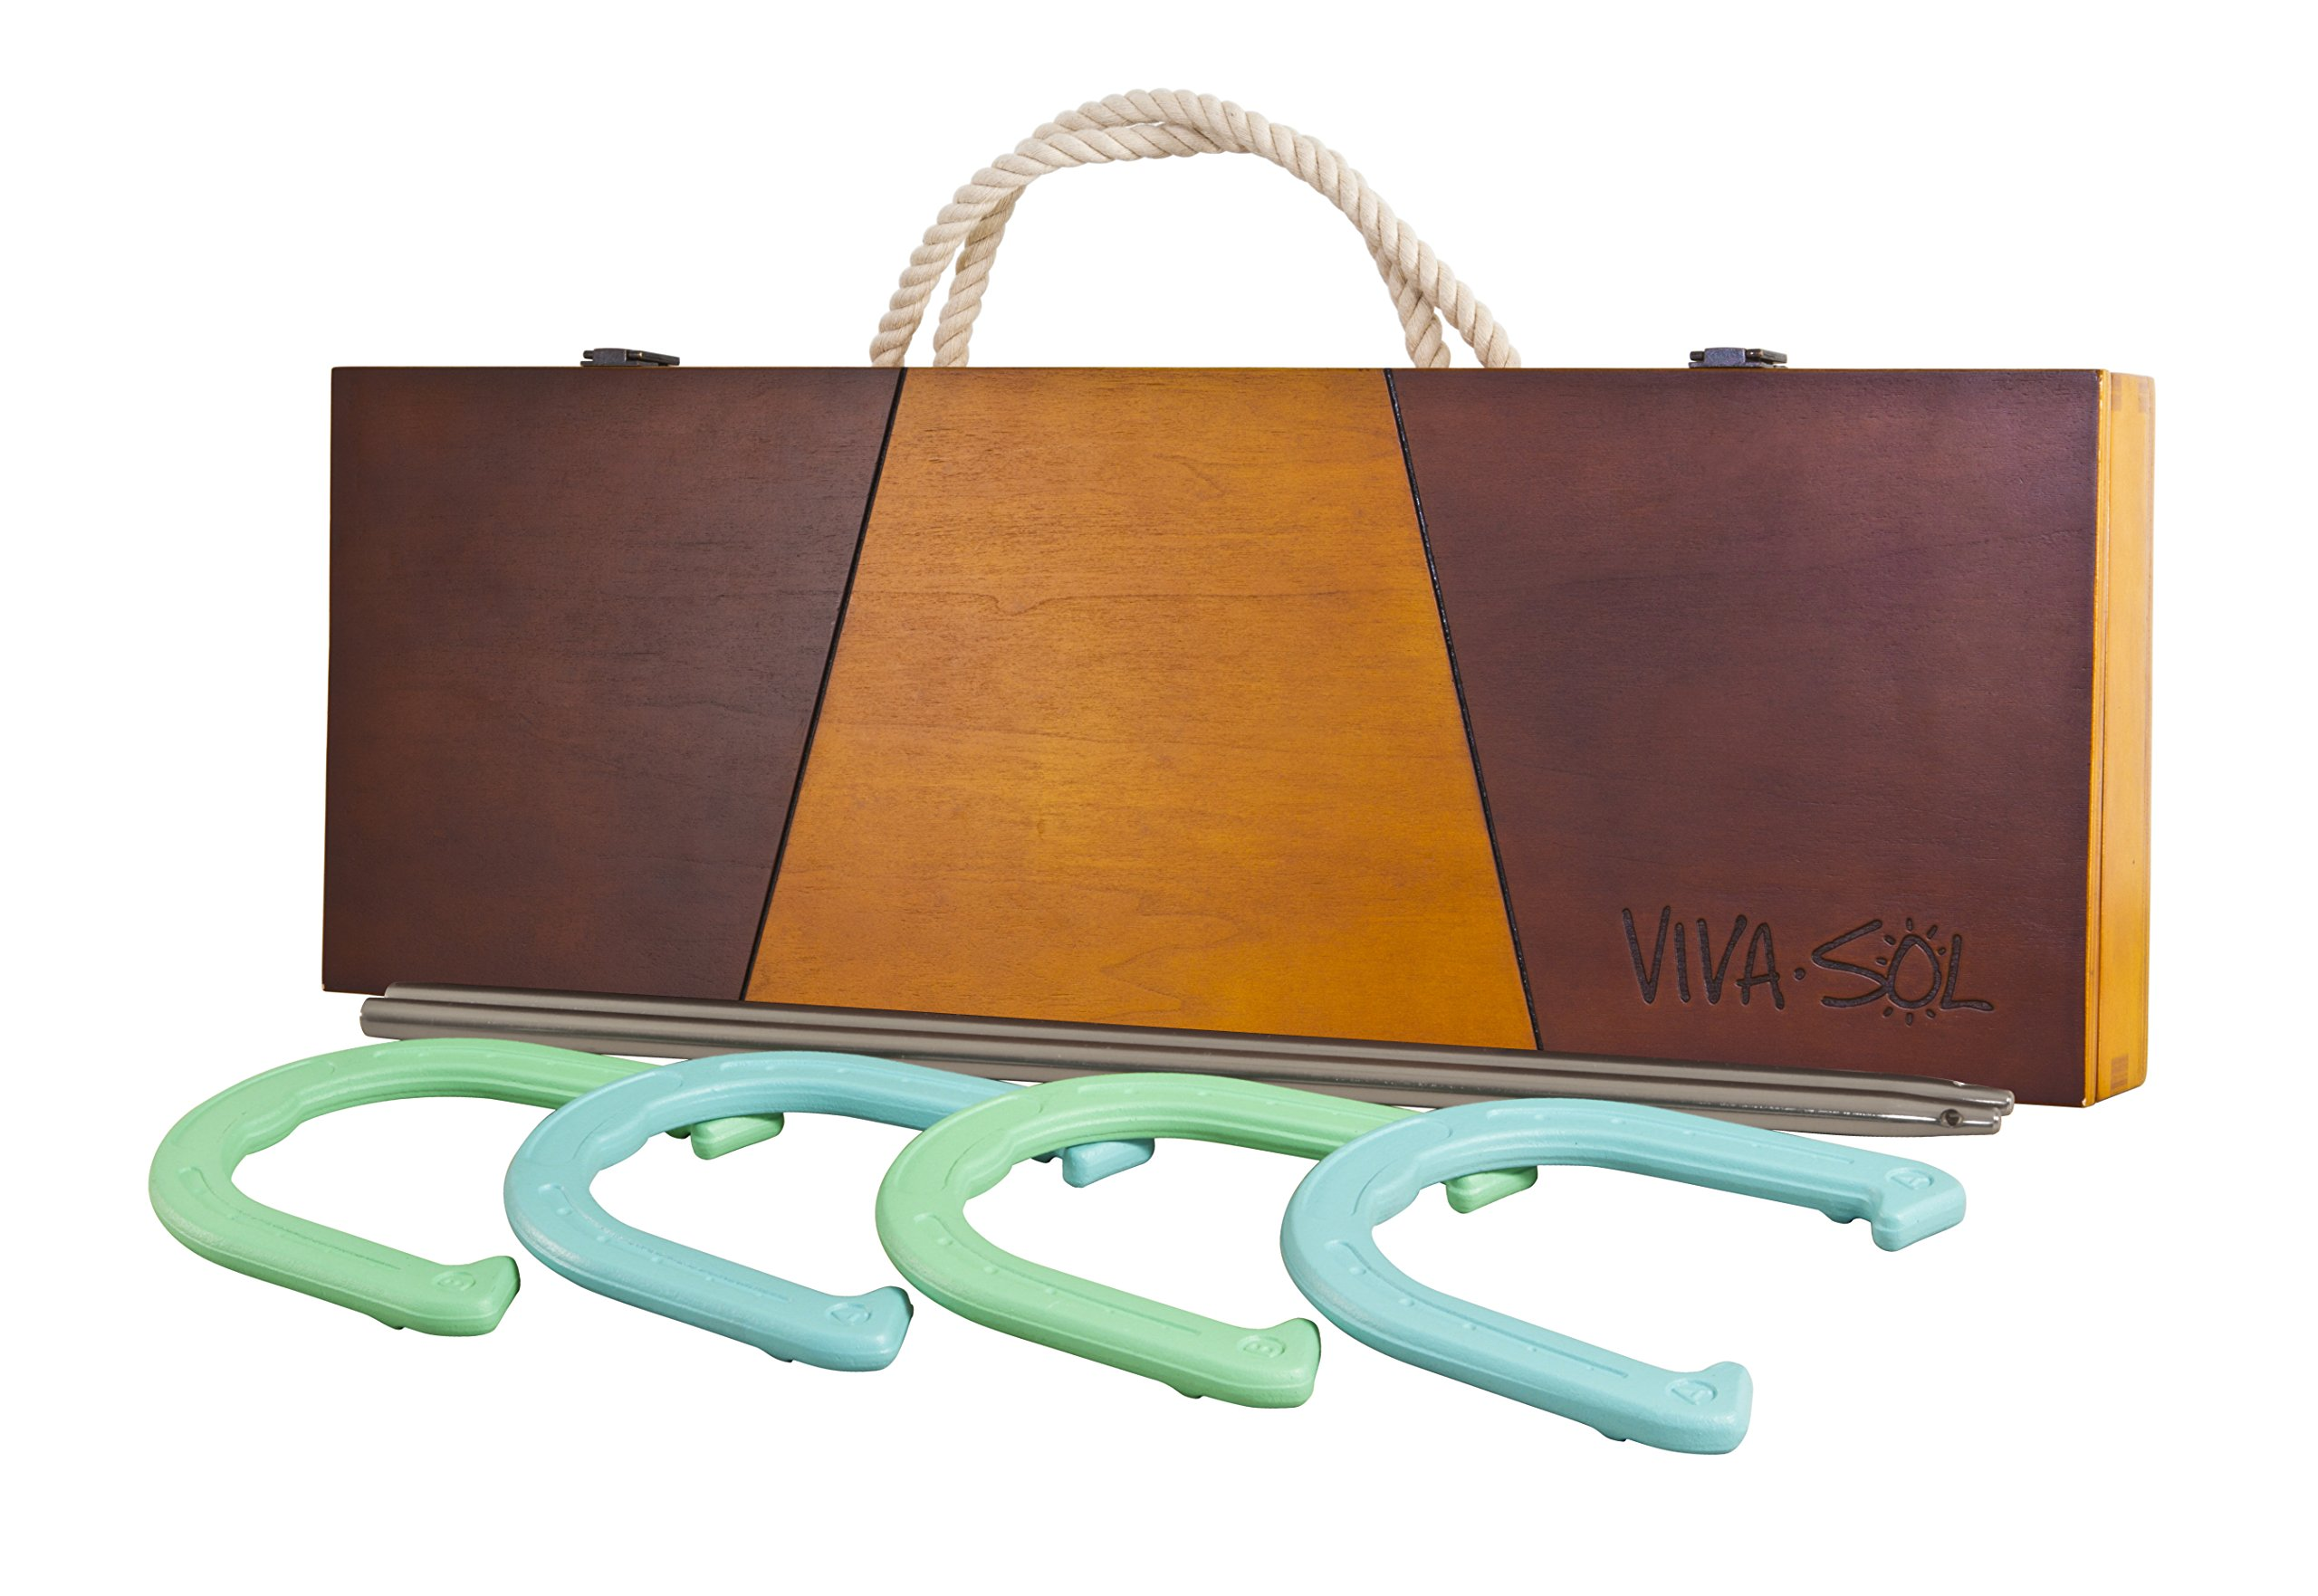 Viva Sol Premium Horseshoes Outdoor Game Set with 4 Horseshoes, 2 Stakes, and Wooden Case by Viva Sol